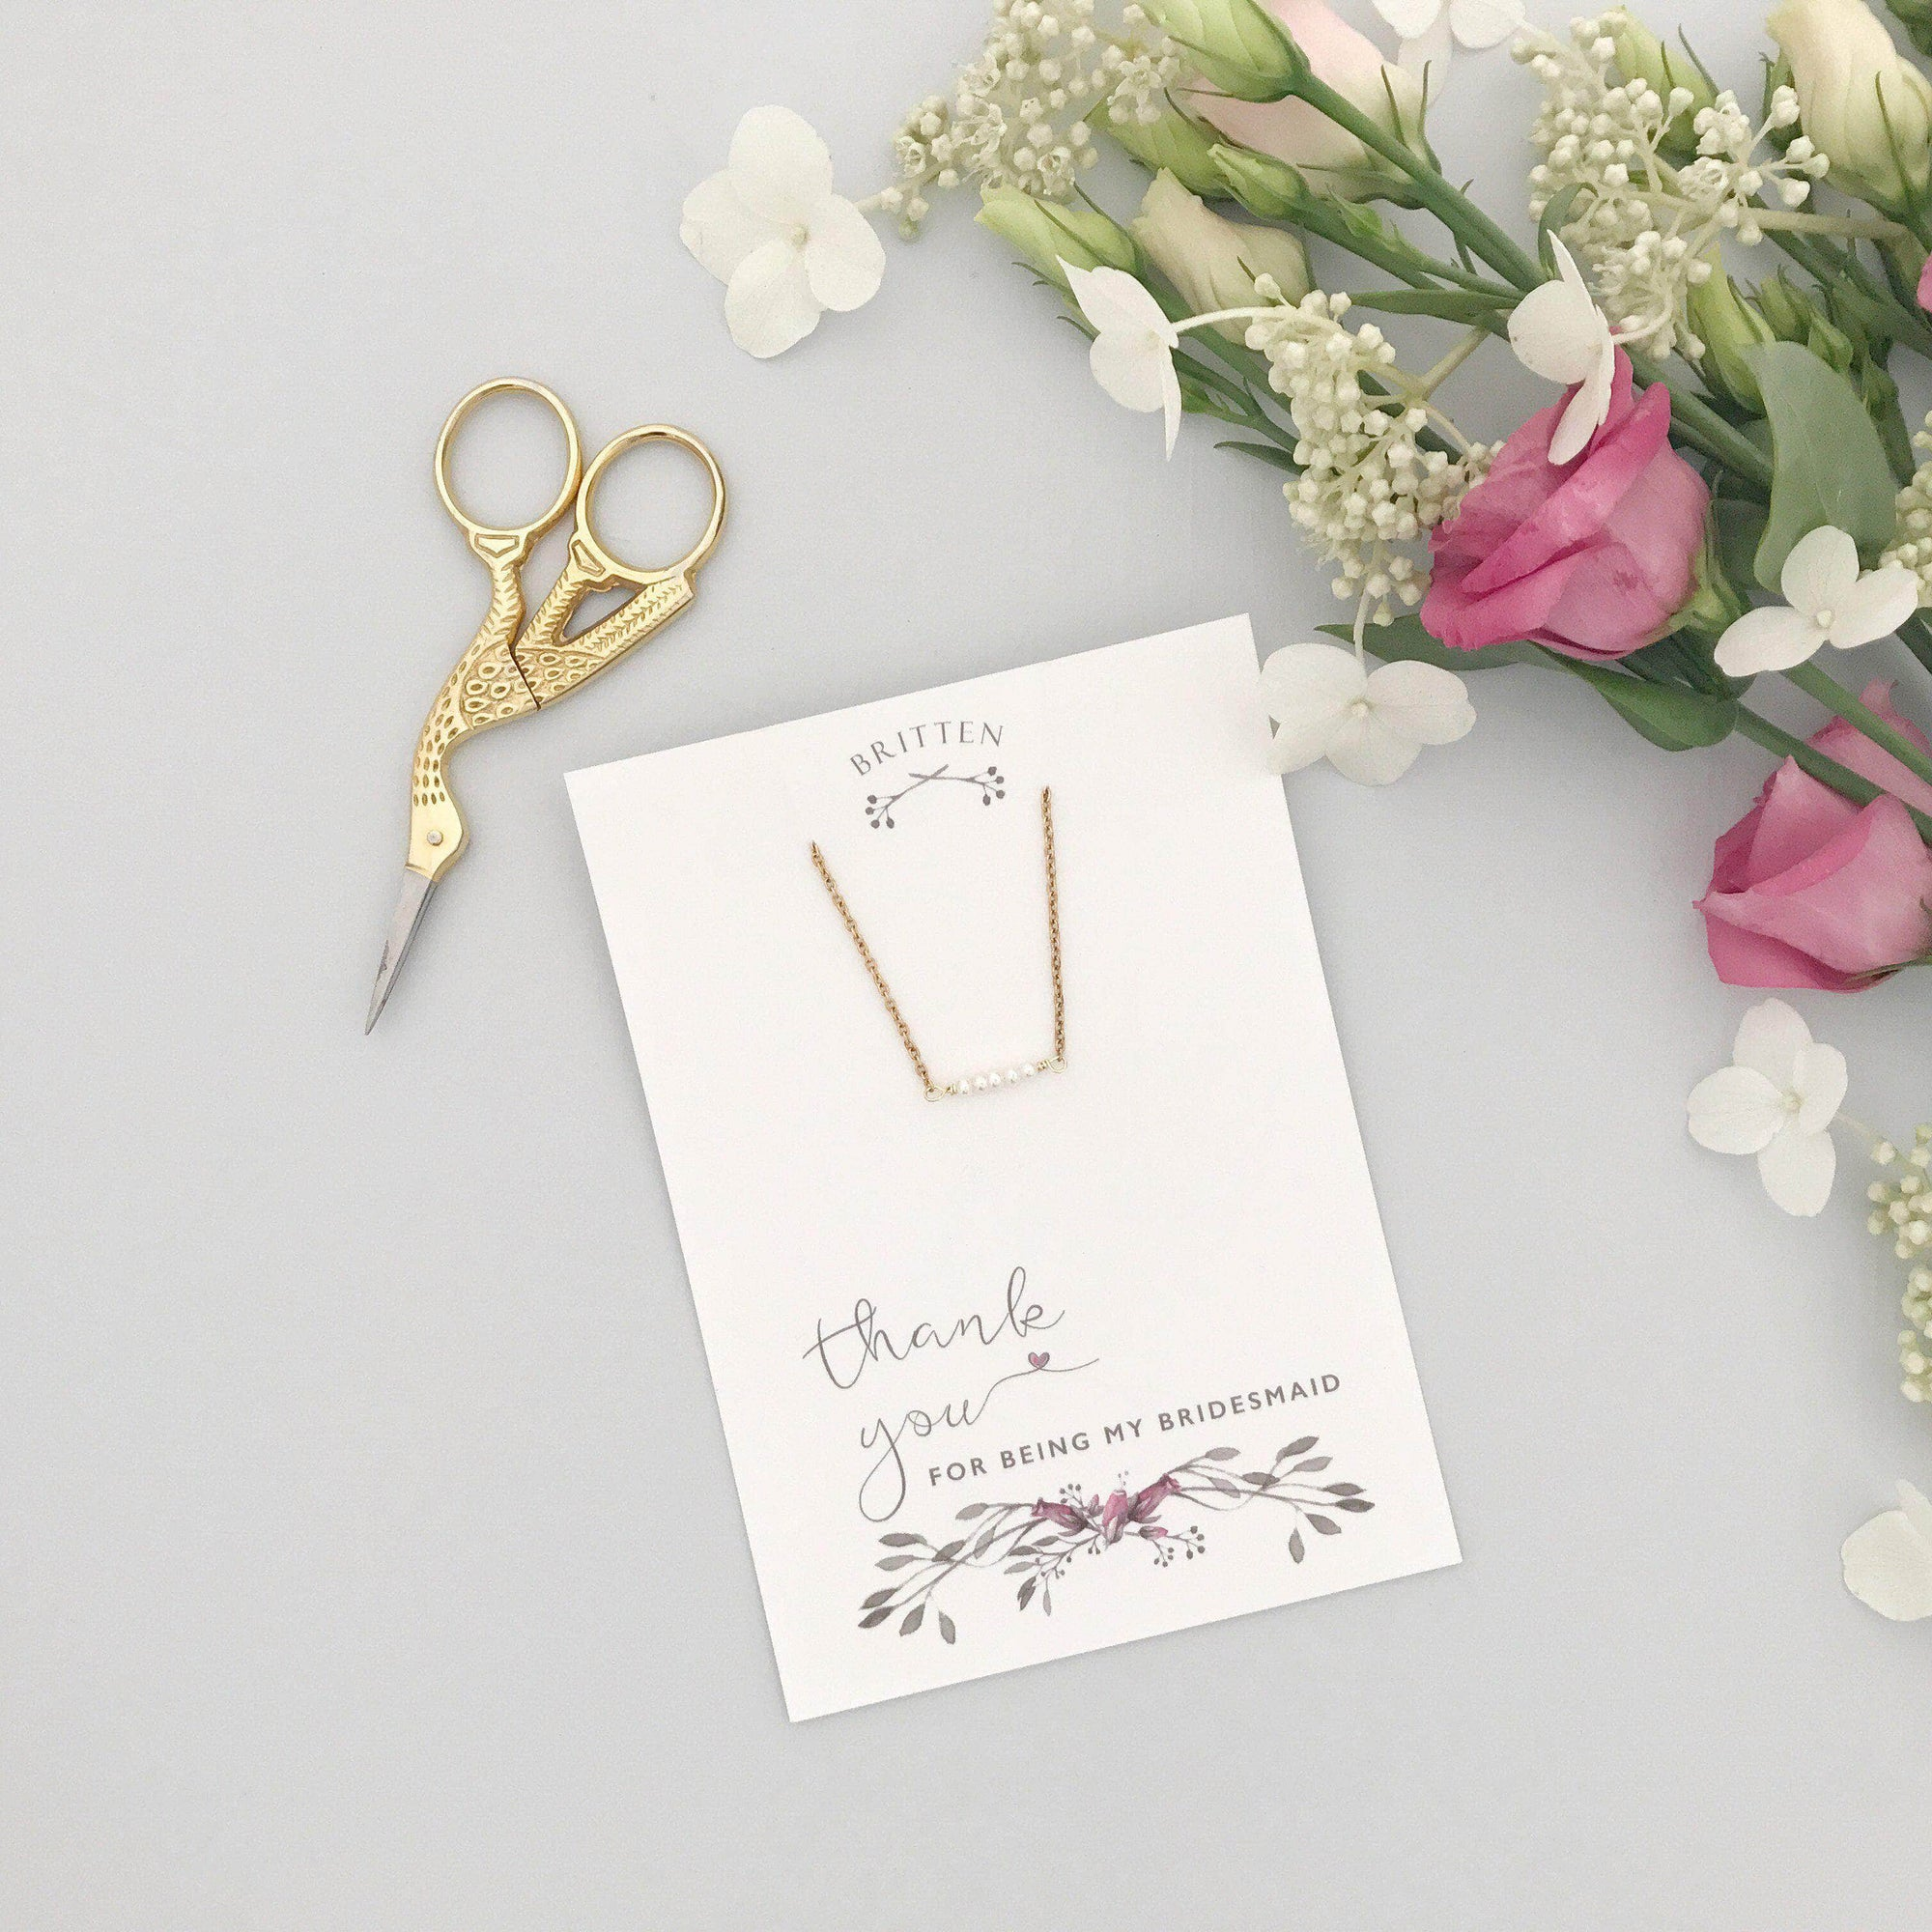 Bridesmaid Gift Gold Bridesmaid 'Thank You' gift gold bracelet - 'Freya'